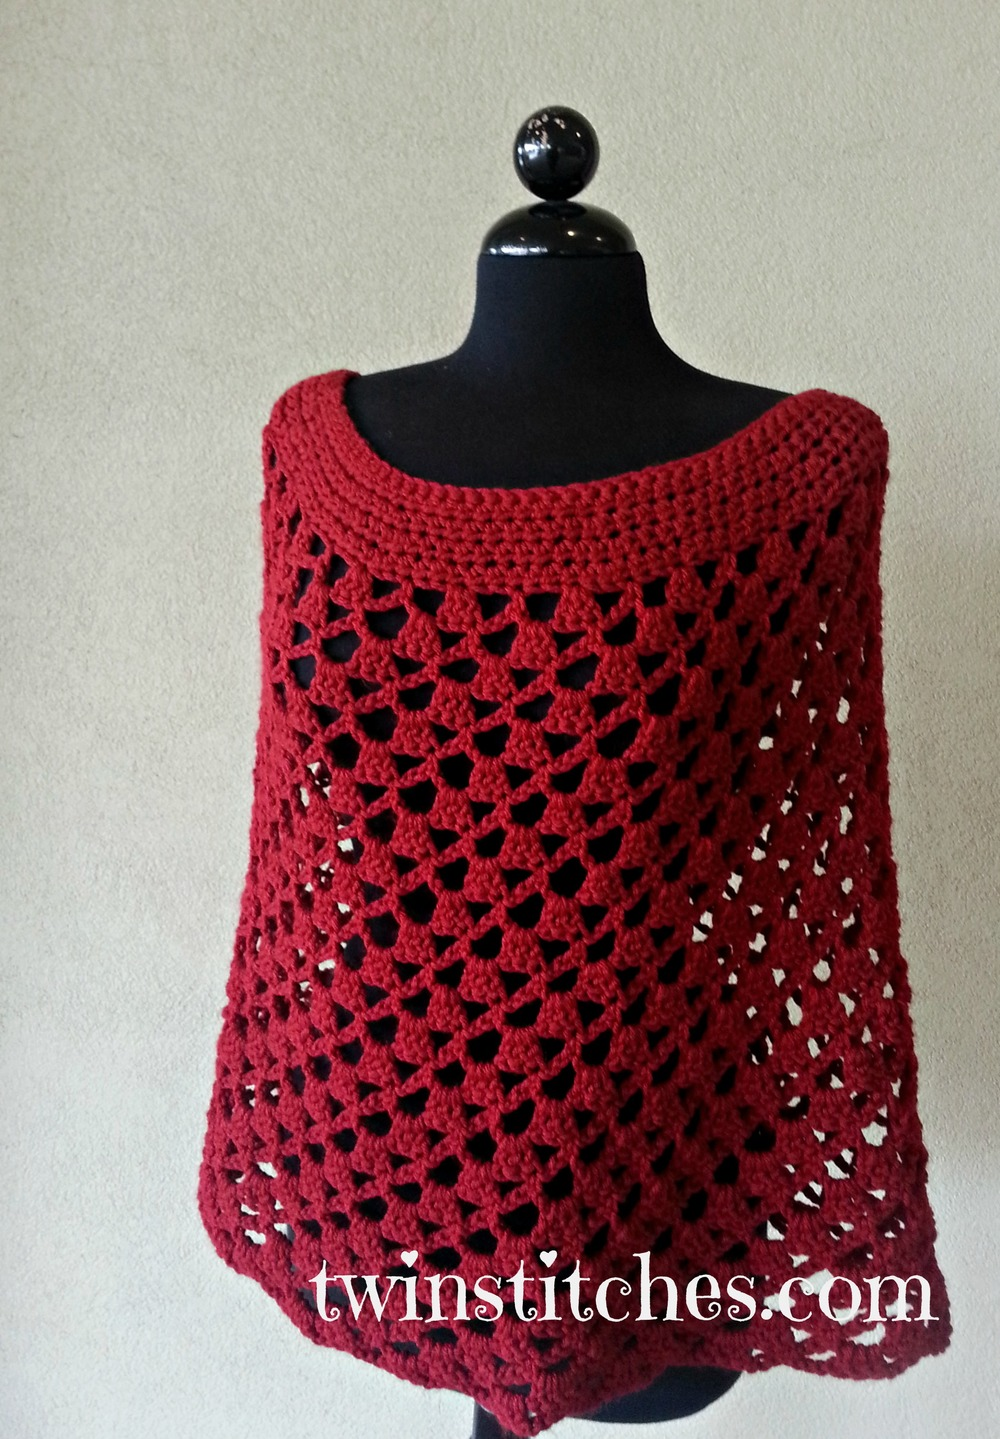 33 Crochet Patterns Inspired By Autumn Leaves Allfreecrochetcom